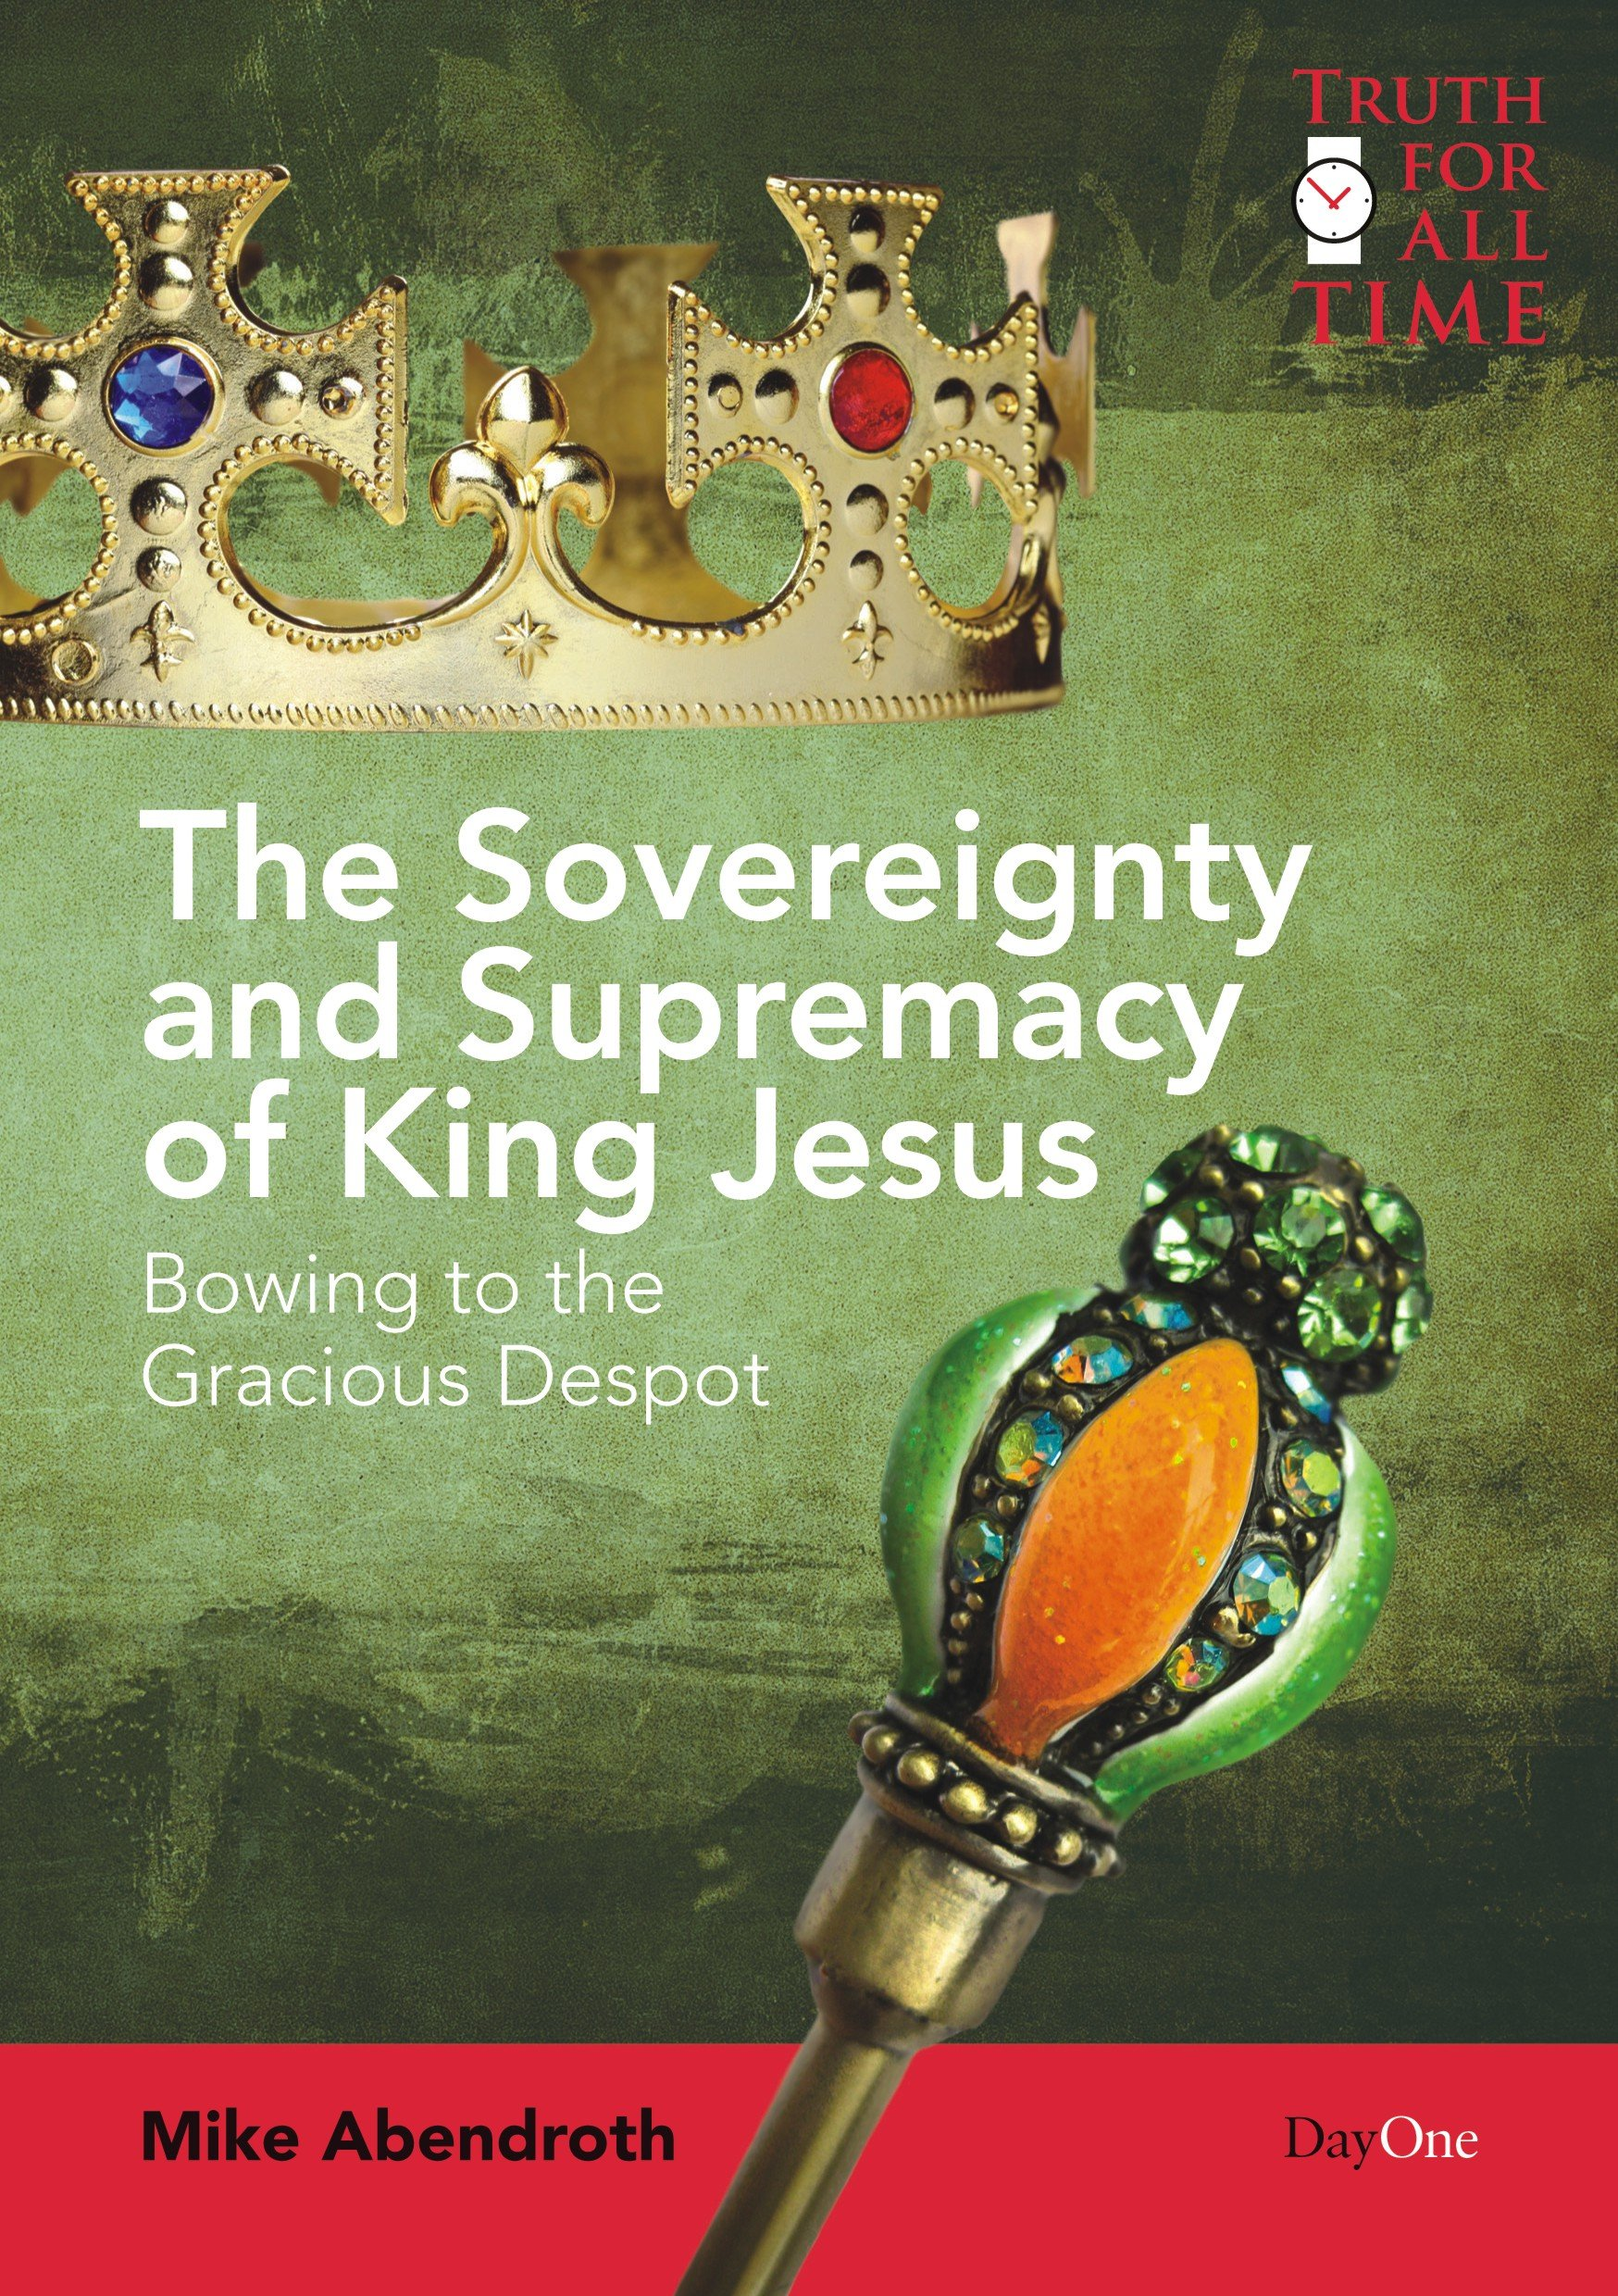 The Sovereignty and Supremacy of King Jesus: Bowing to the Gracious Despot (Truth for All Time) ebook